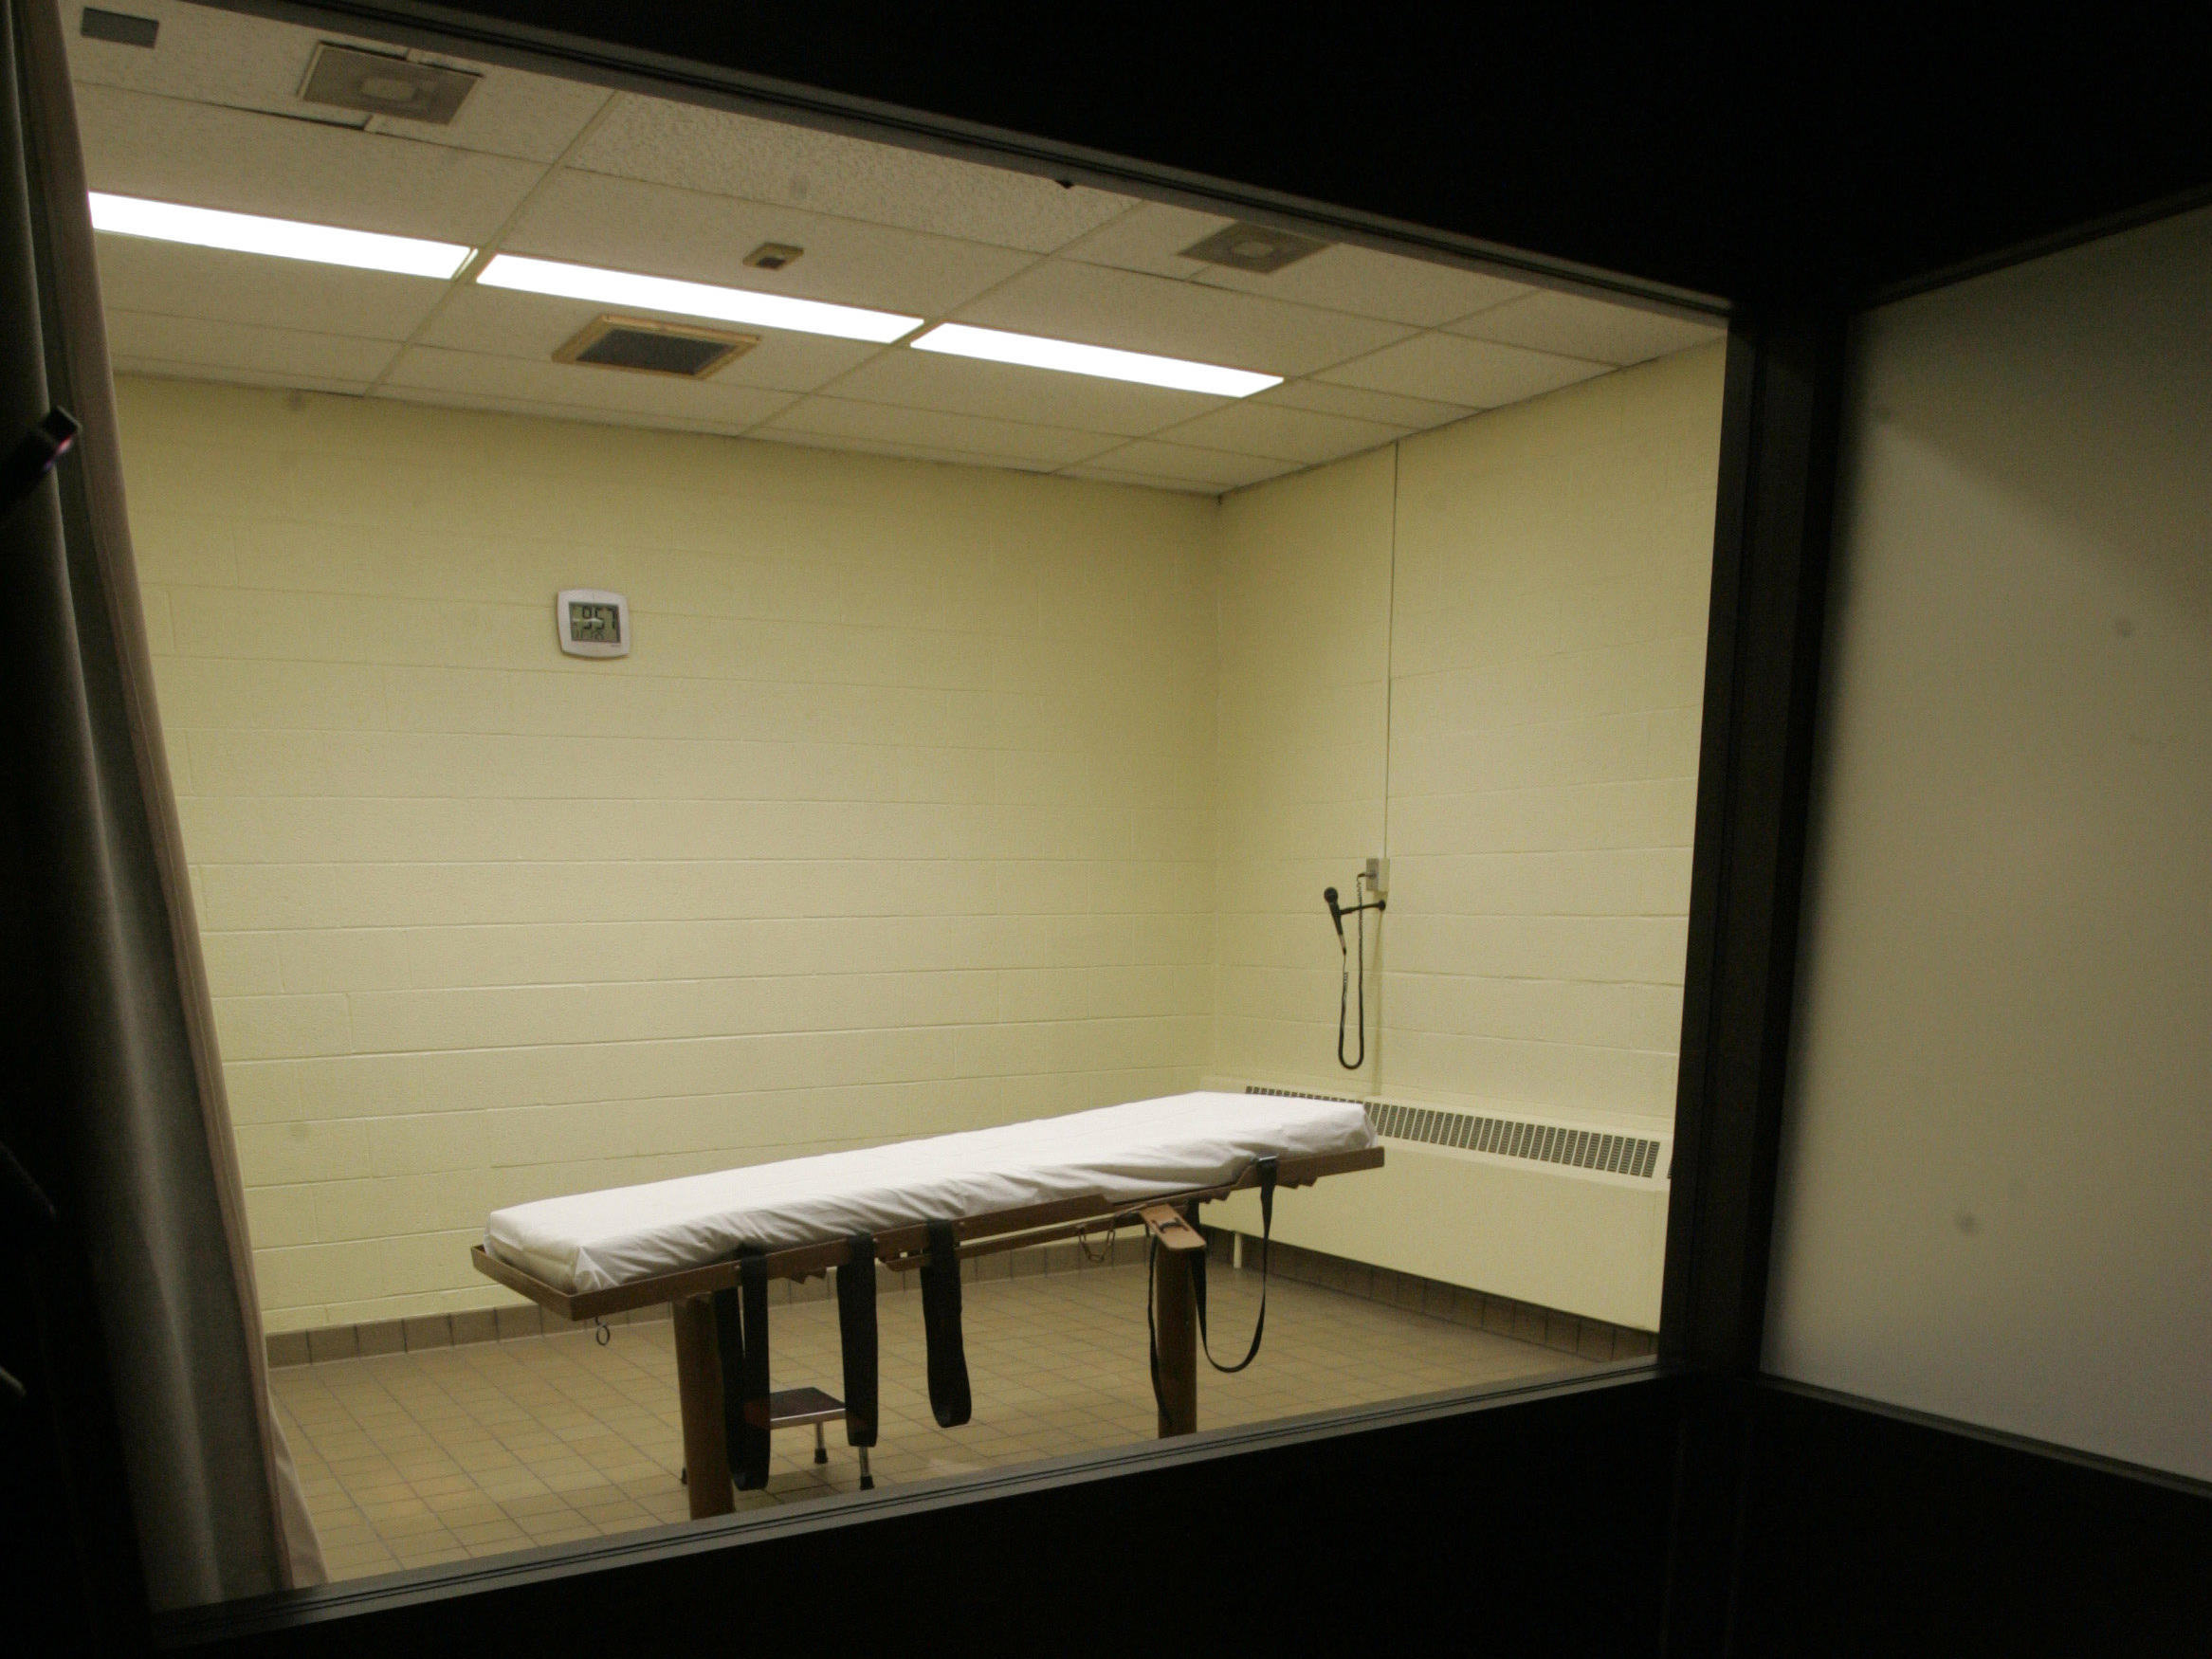 Federal judge rejects Ohio's new lethal injection process, stays executions